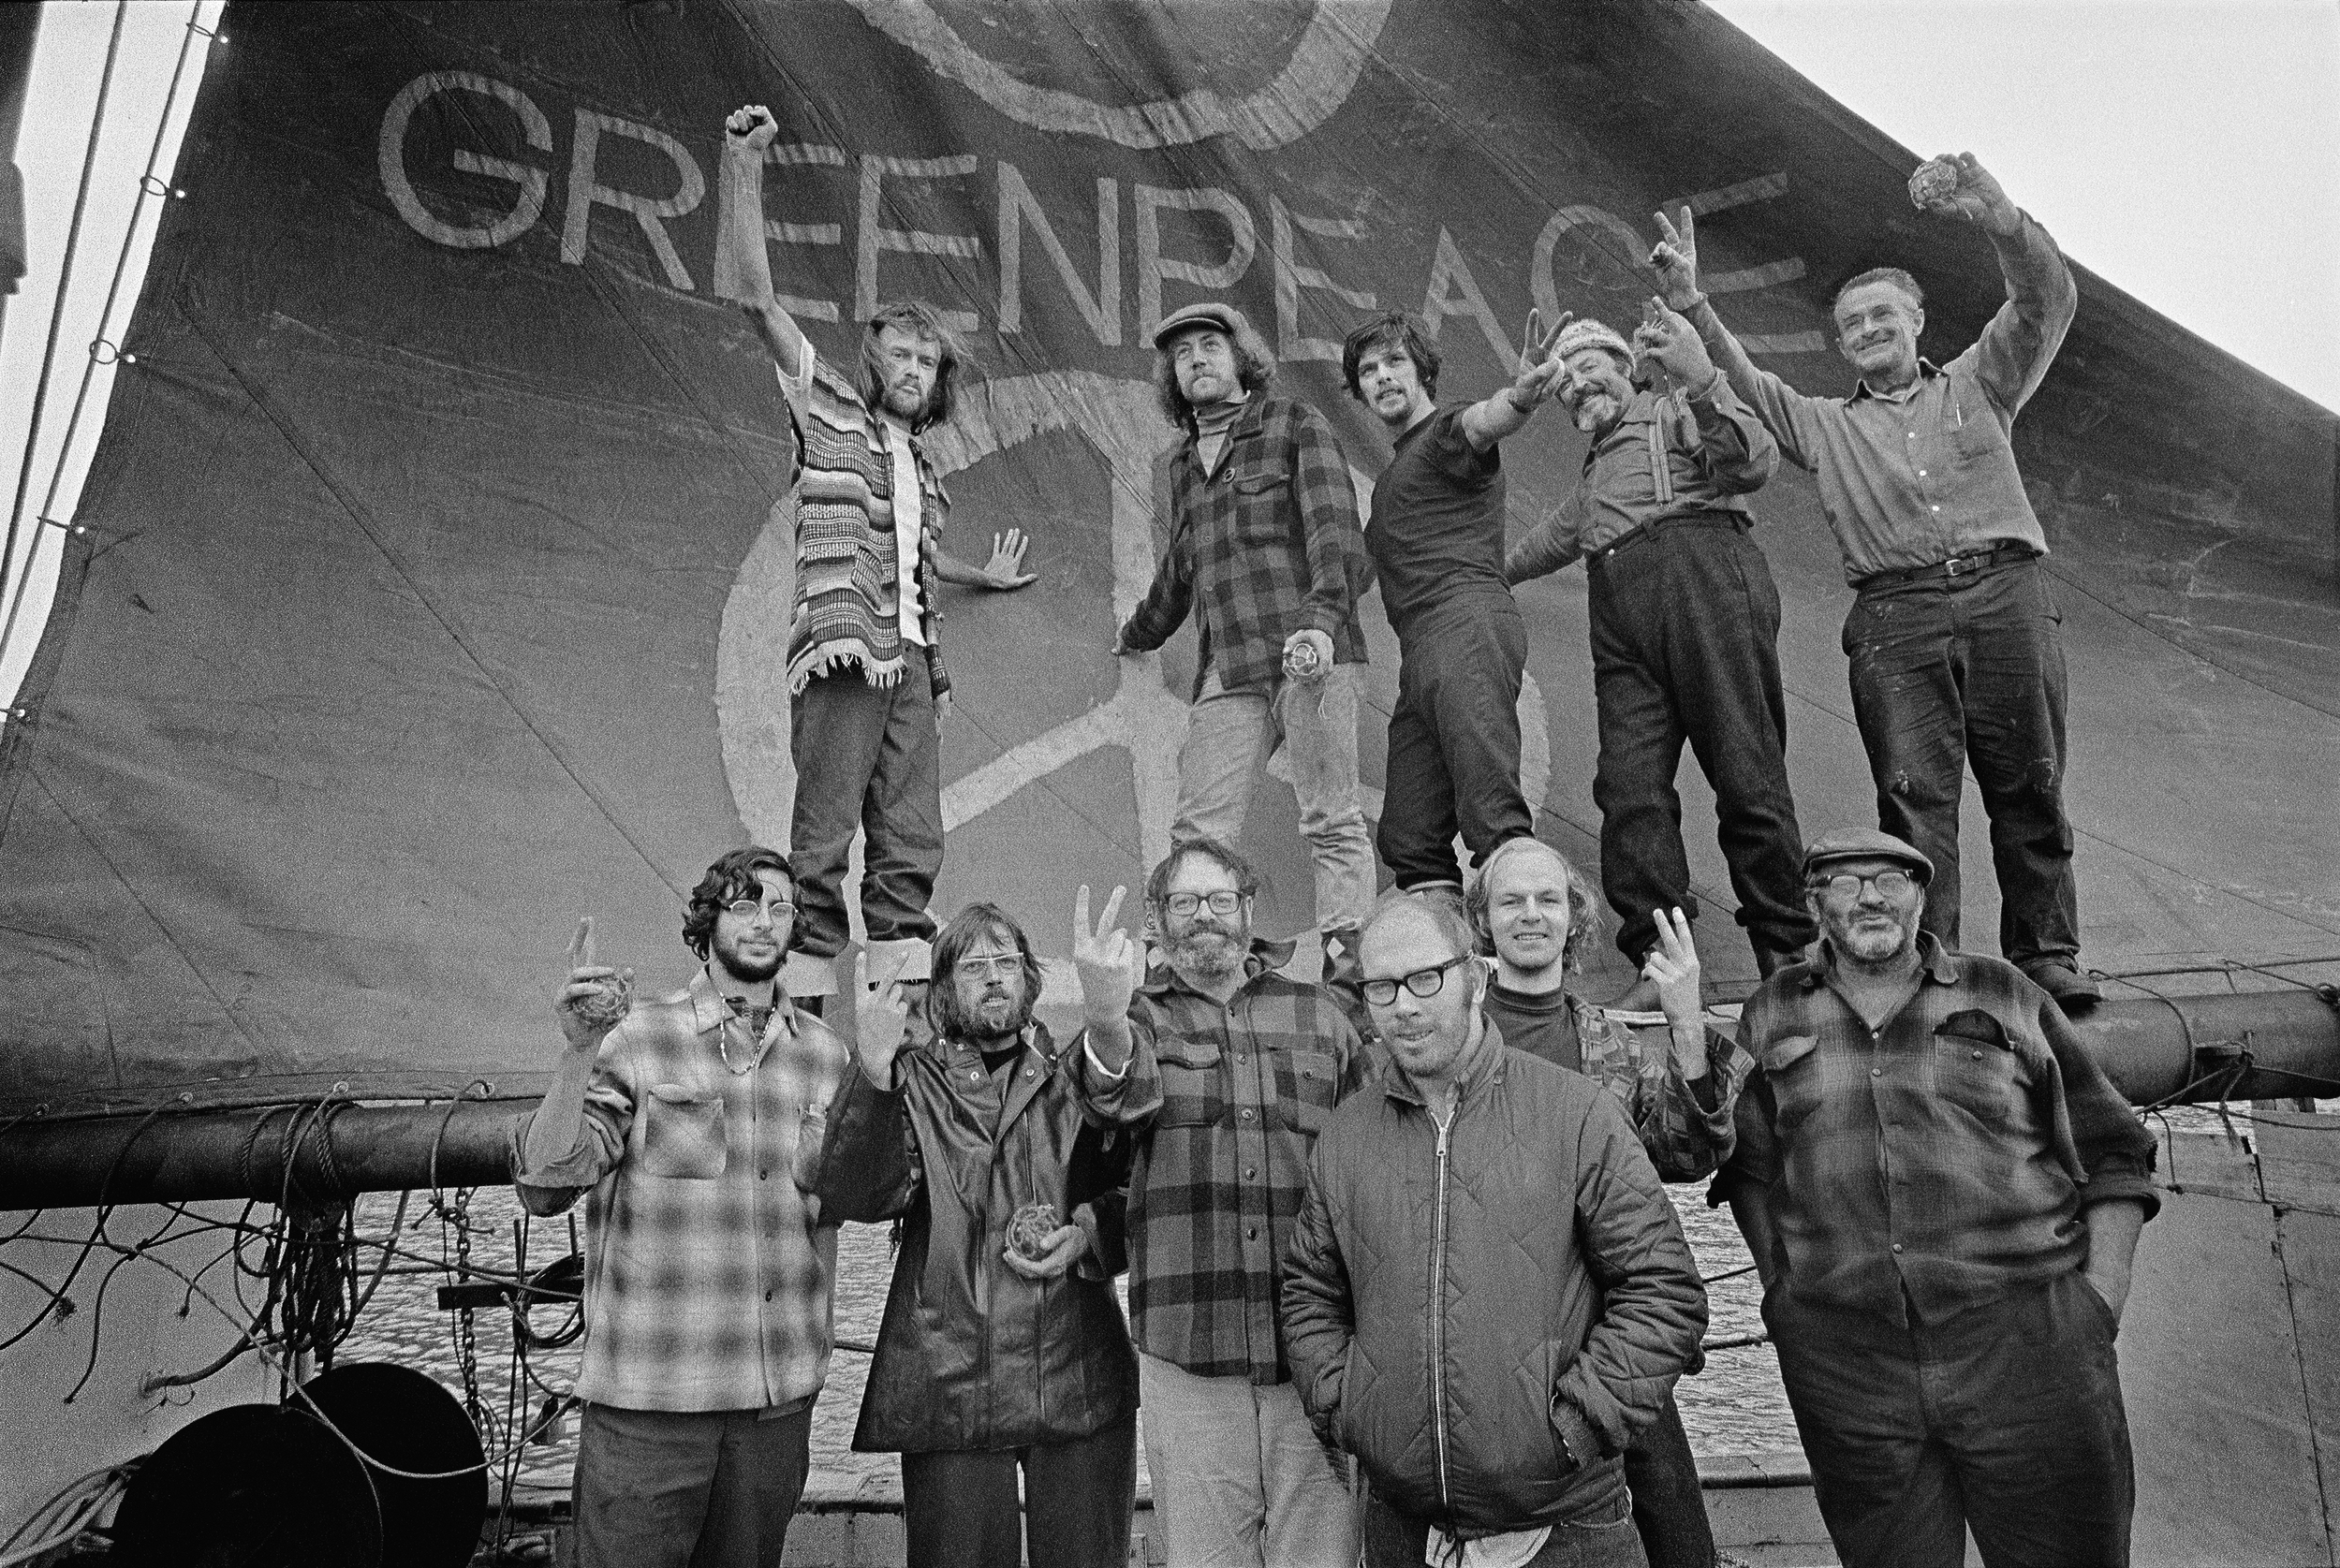 group of people stand in front of original greenpeace logo